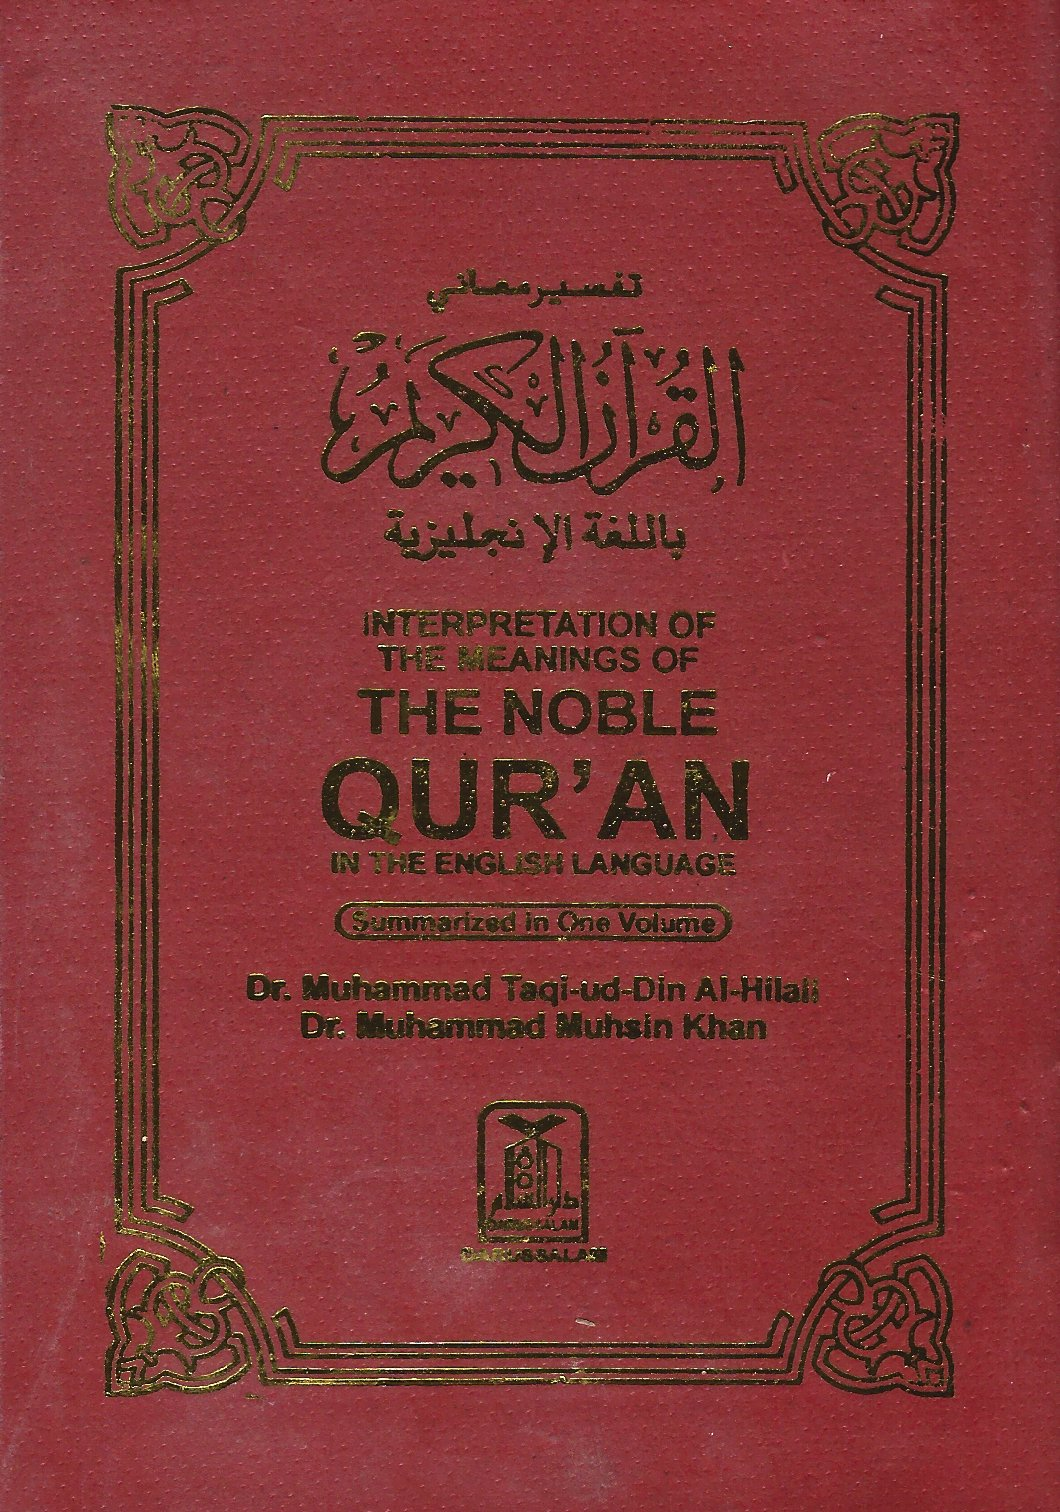 INTERPRETATION OF THE MEANING OF THE NOBLE QUR'AN IN THE